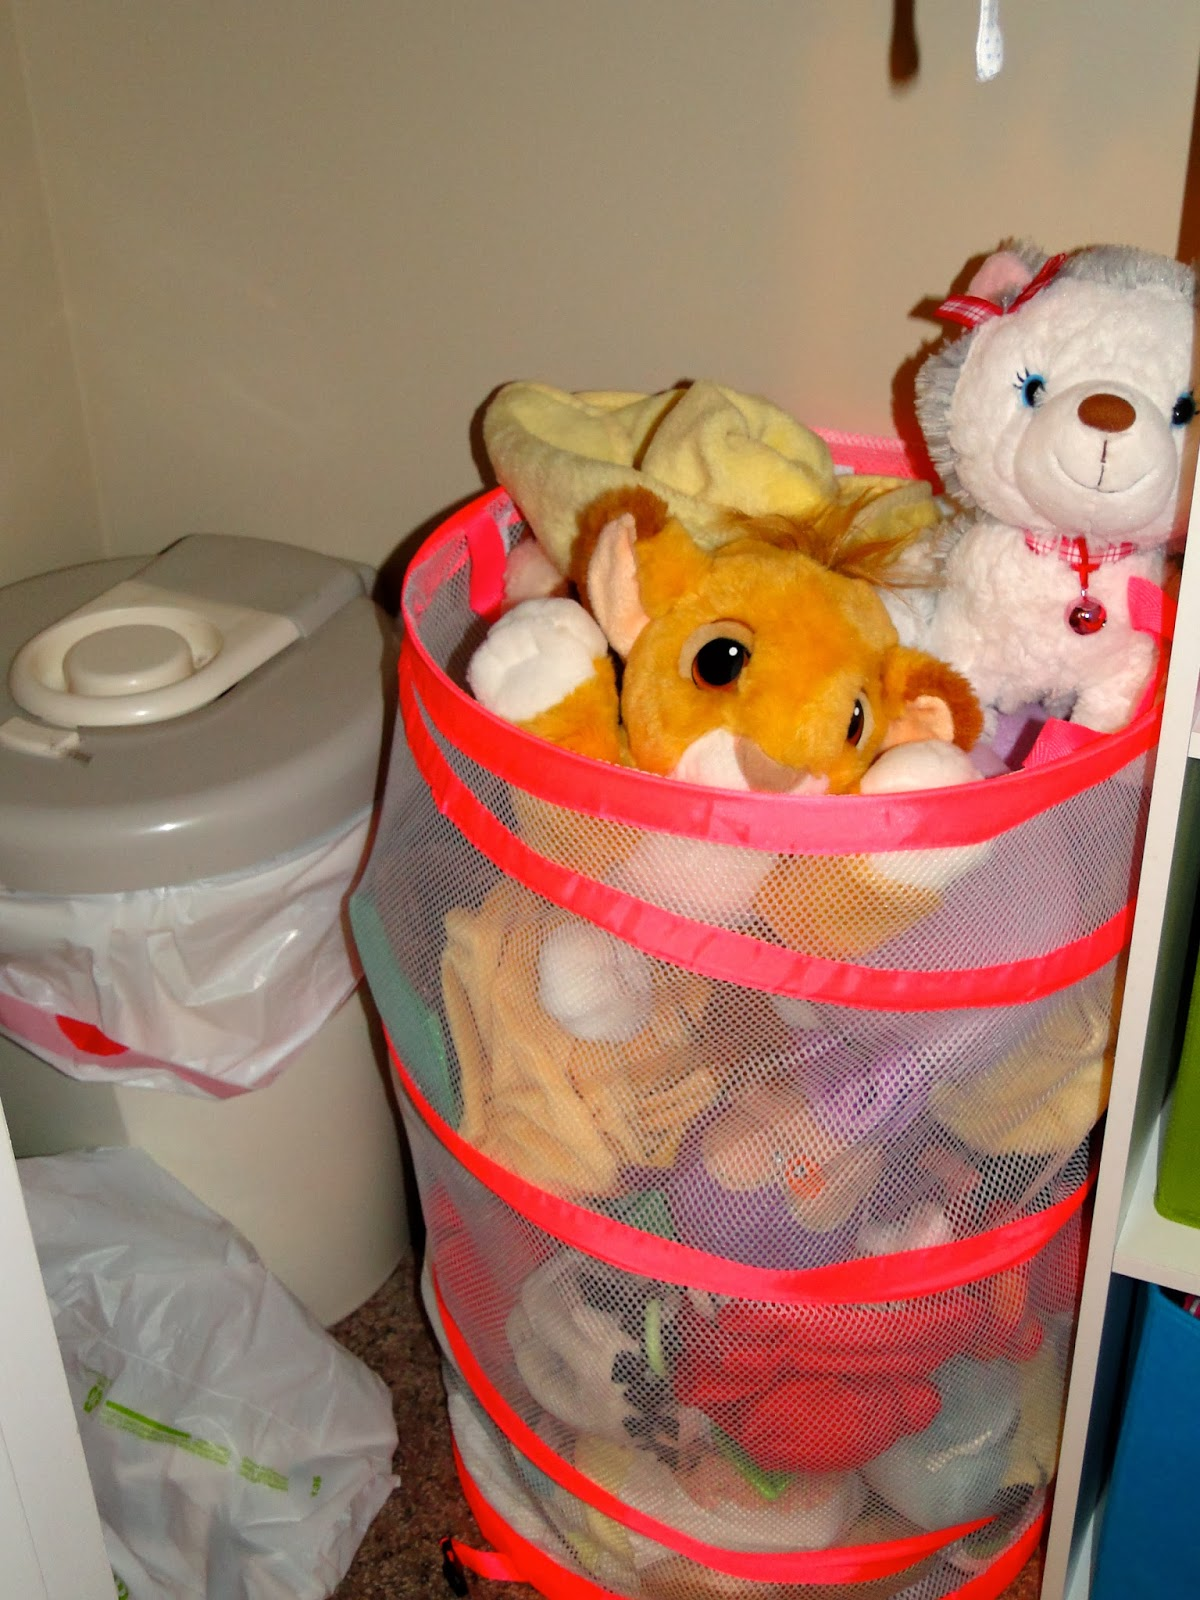 The Journey of Parenthood...: Preventing the Toy Takeover